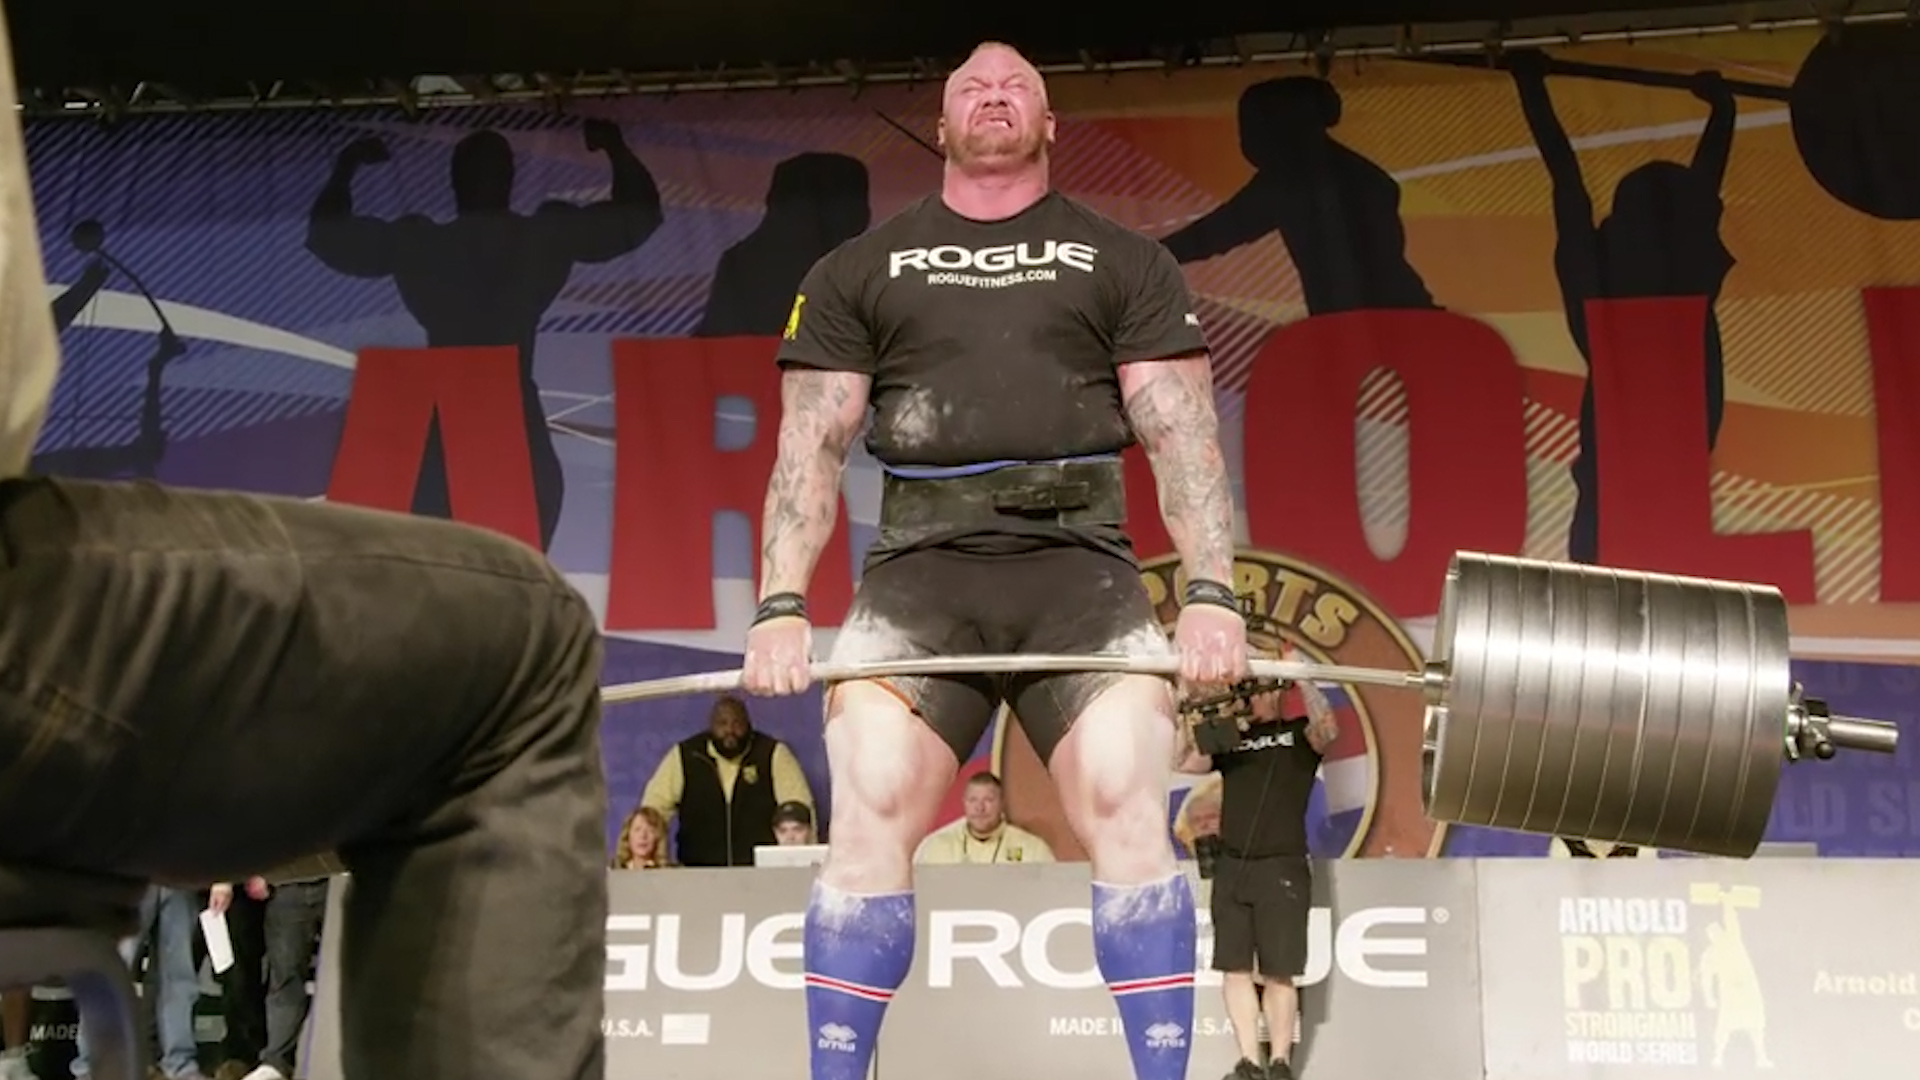 The Mountain from 'Game of Thrones' deadlifts world record weight